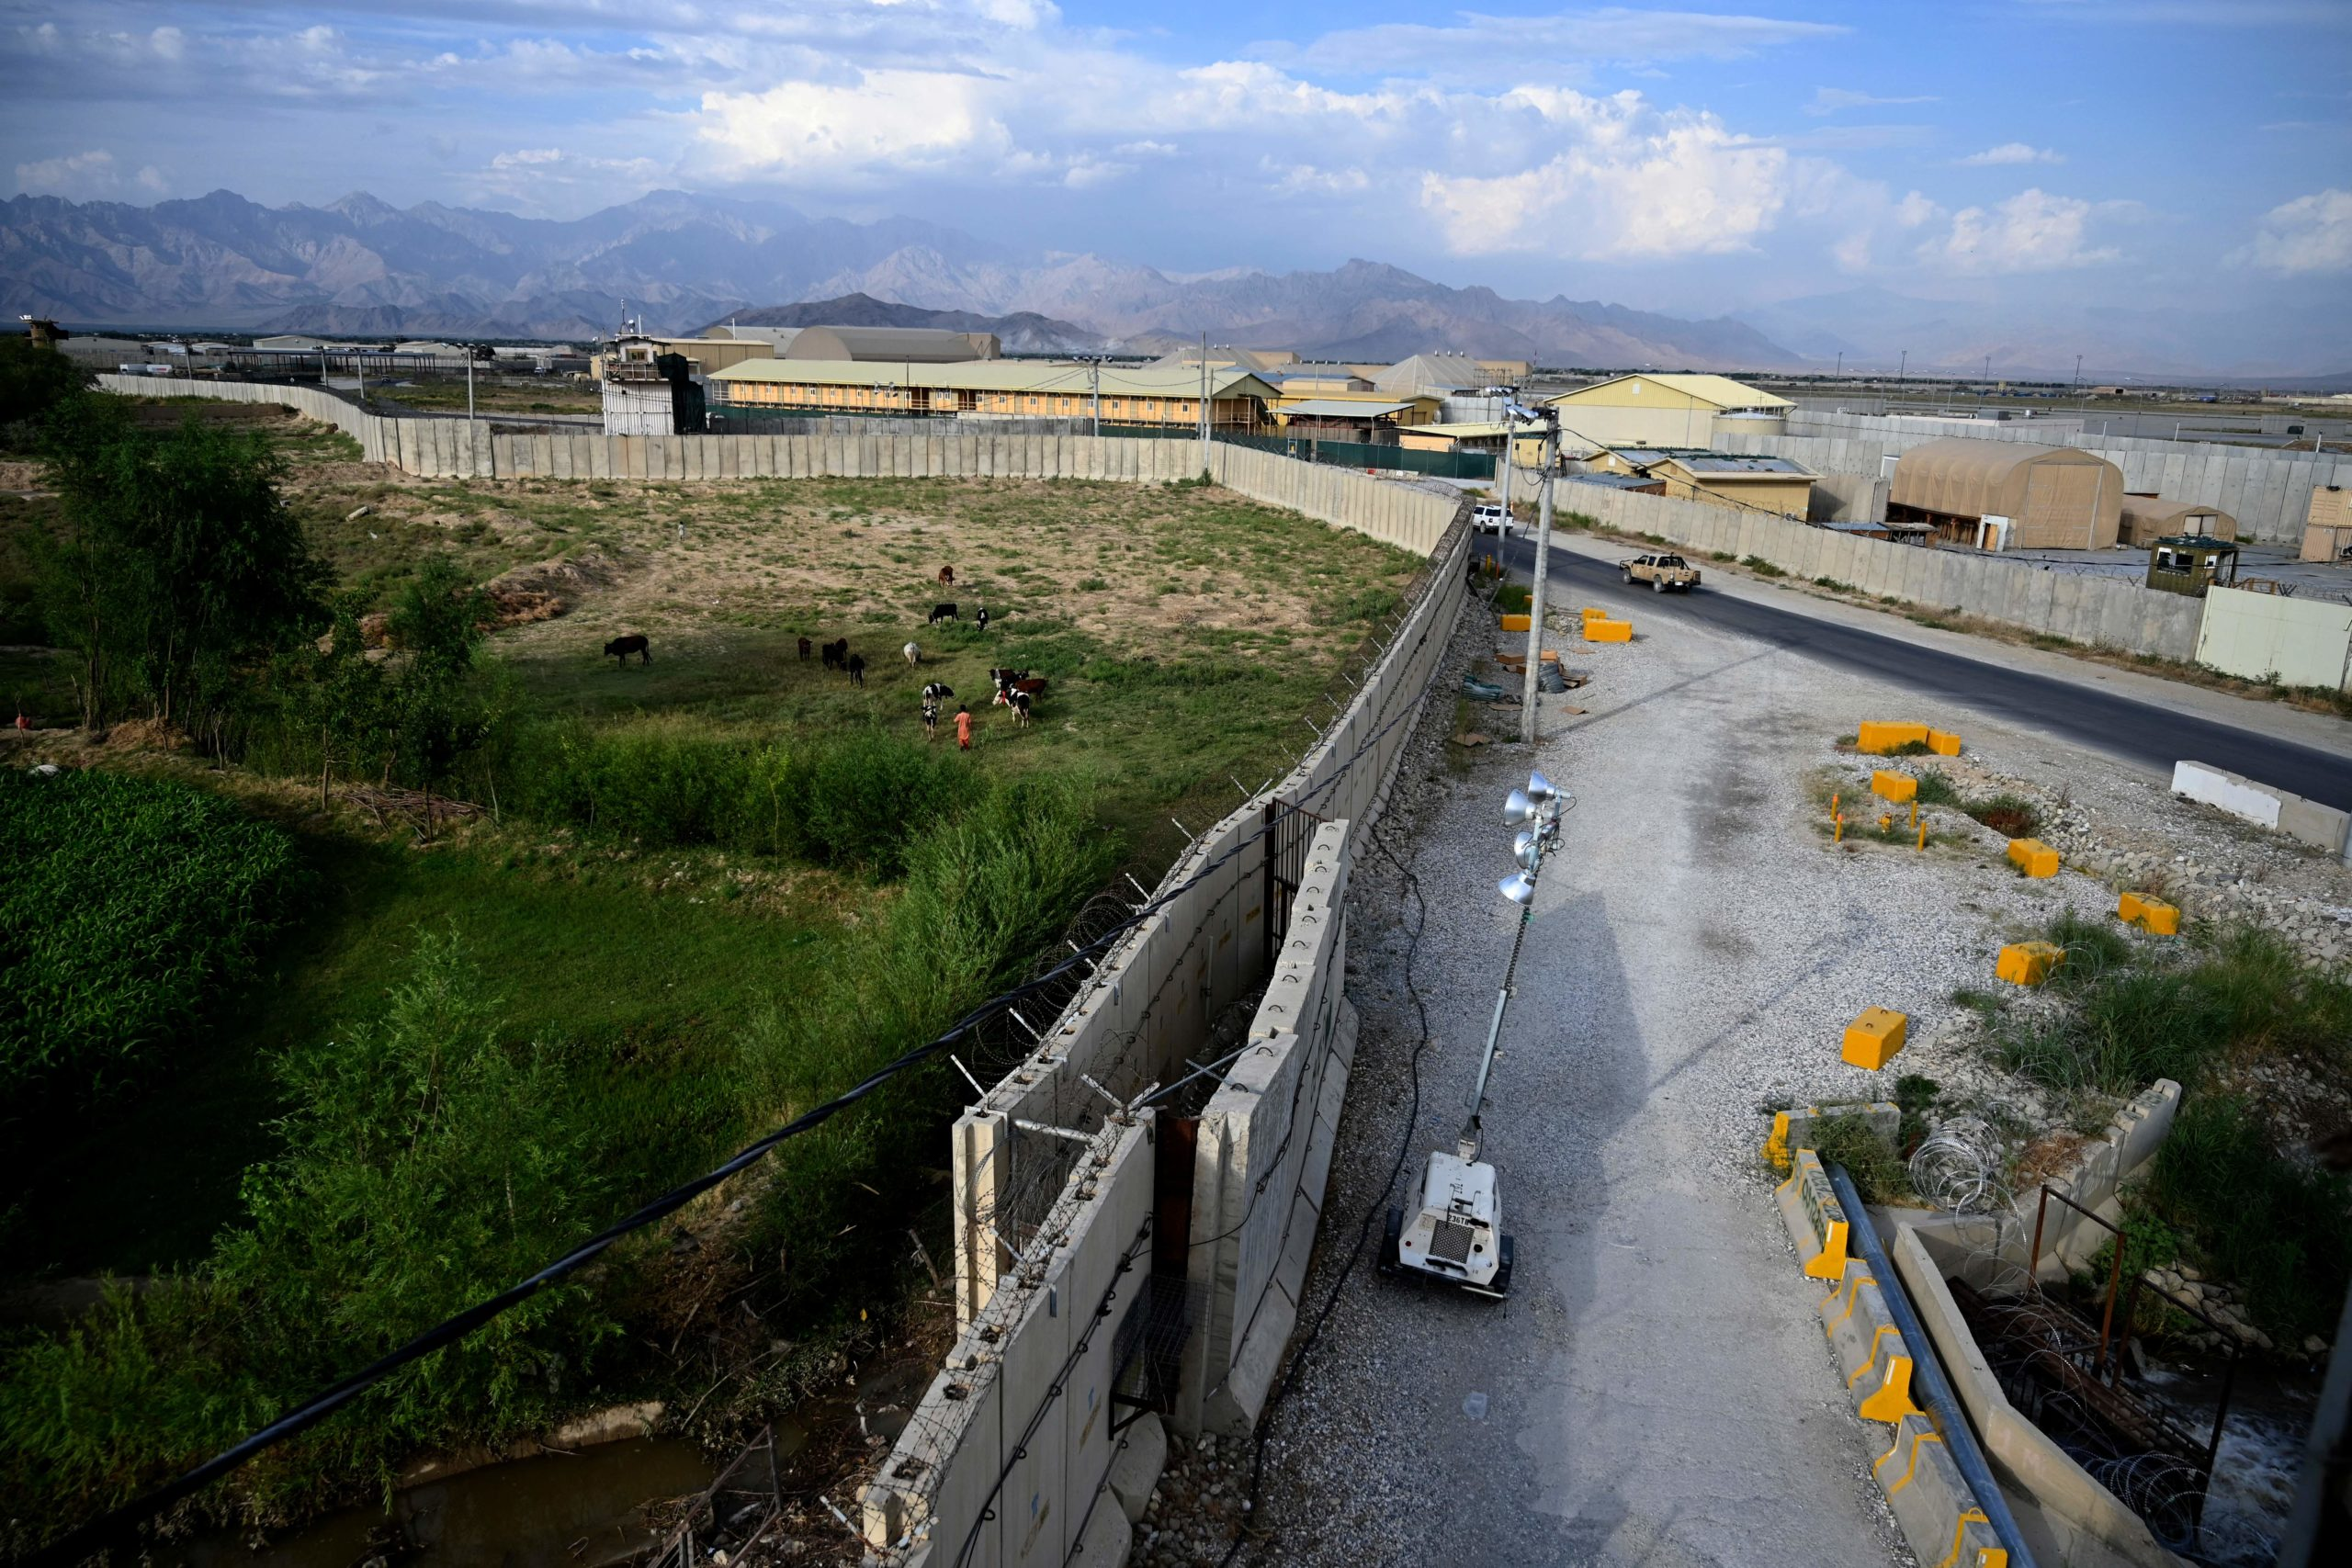 A general view of Bagram Air Base is pictured on Monday. (Wakil Kohsar/AFP via Getty Images)